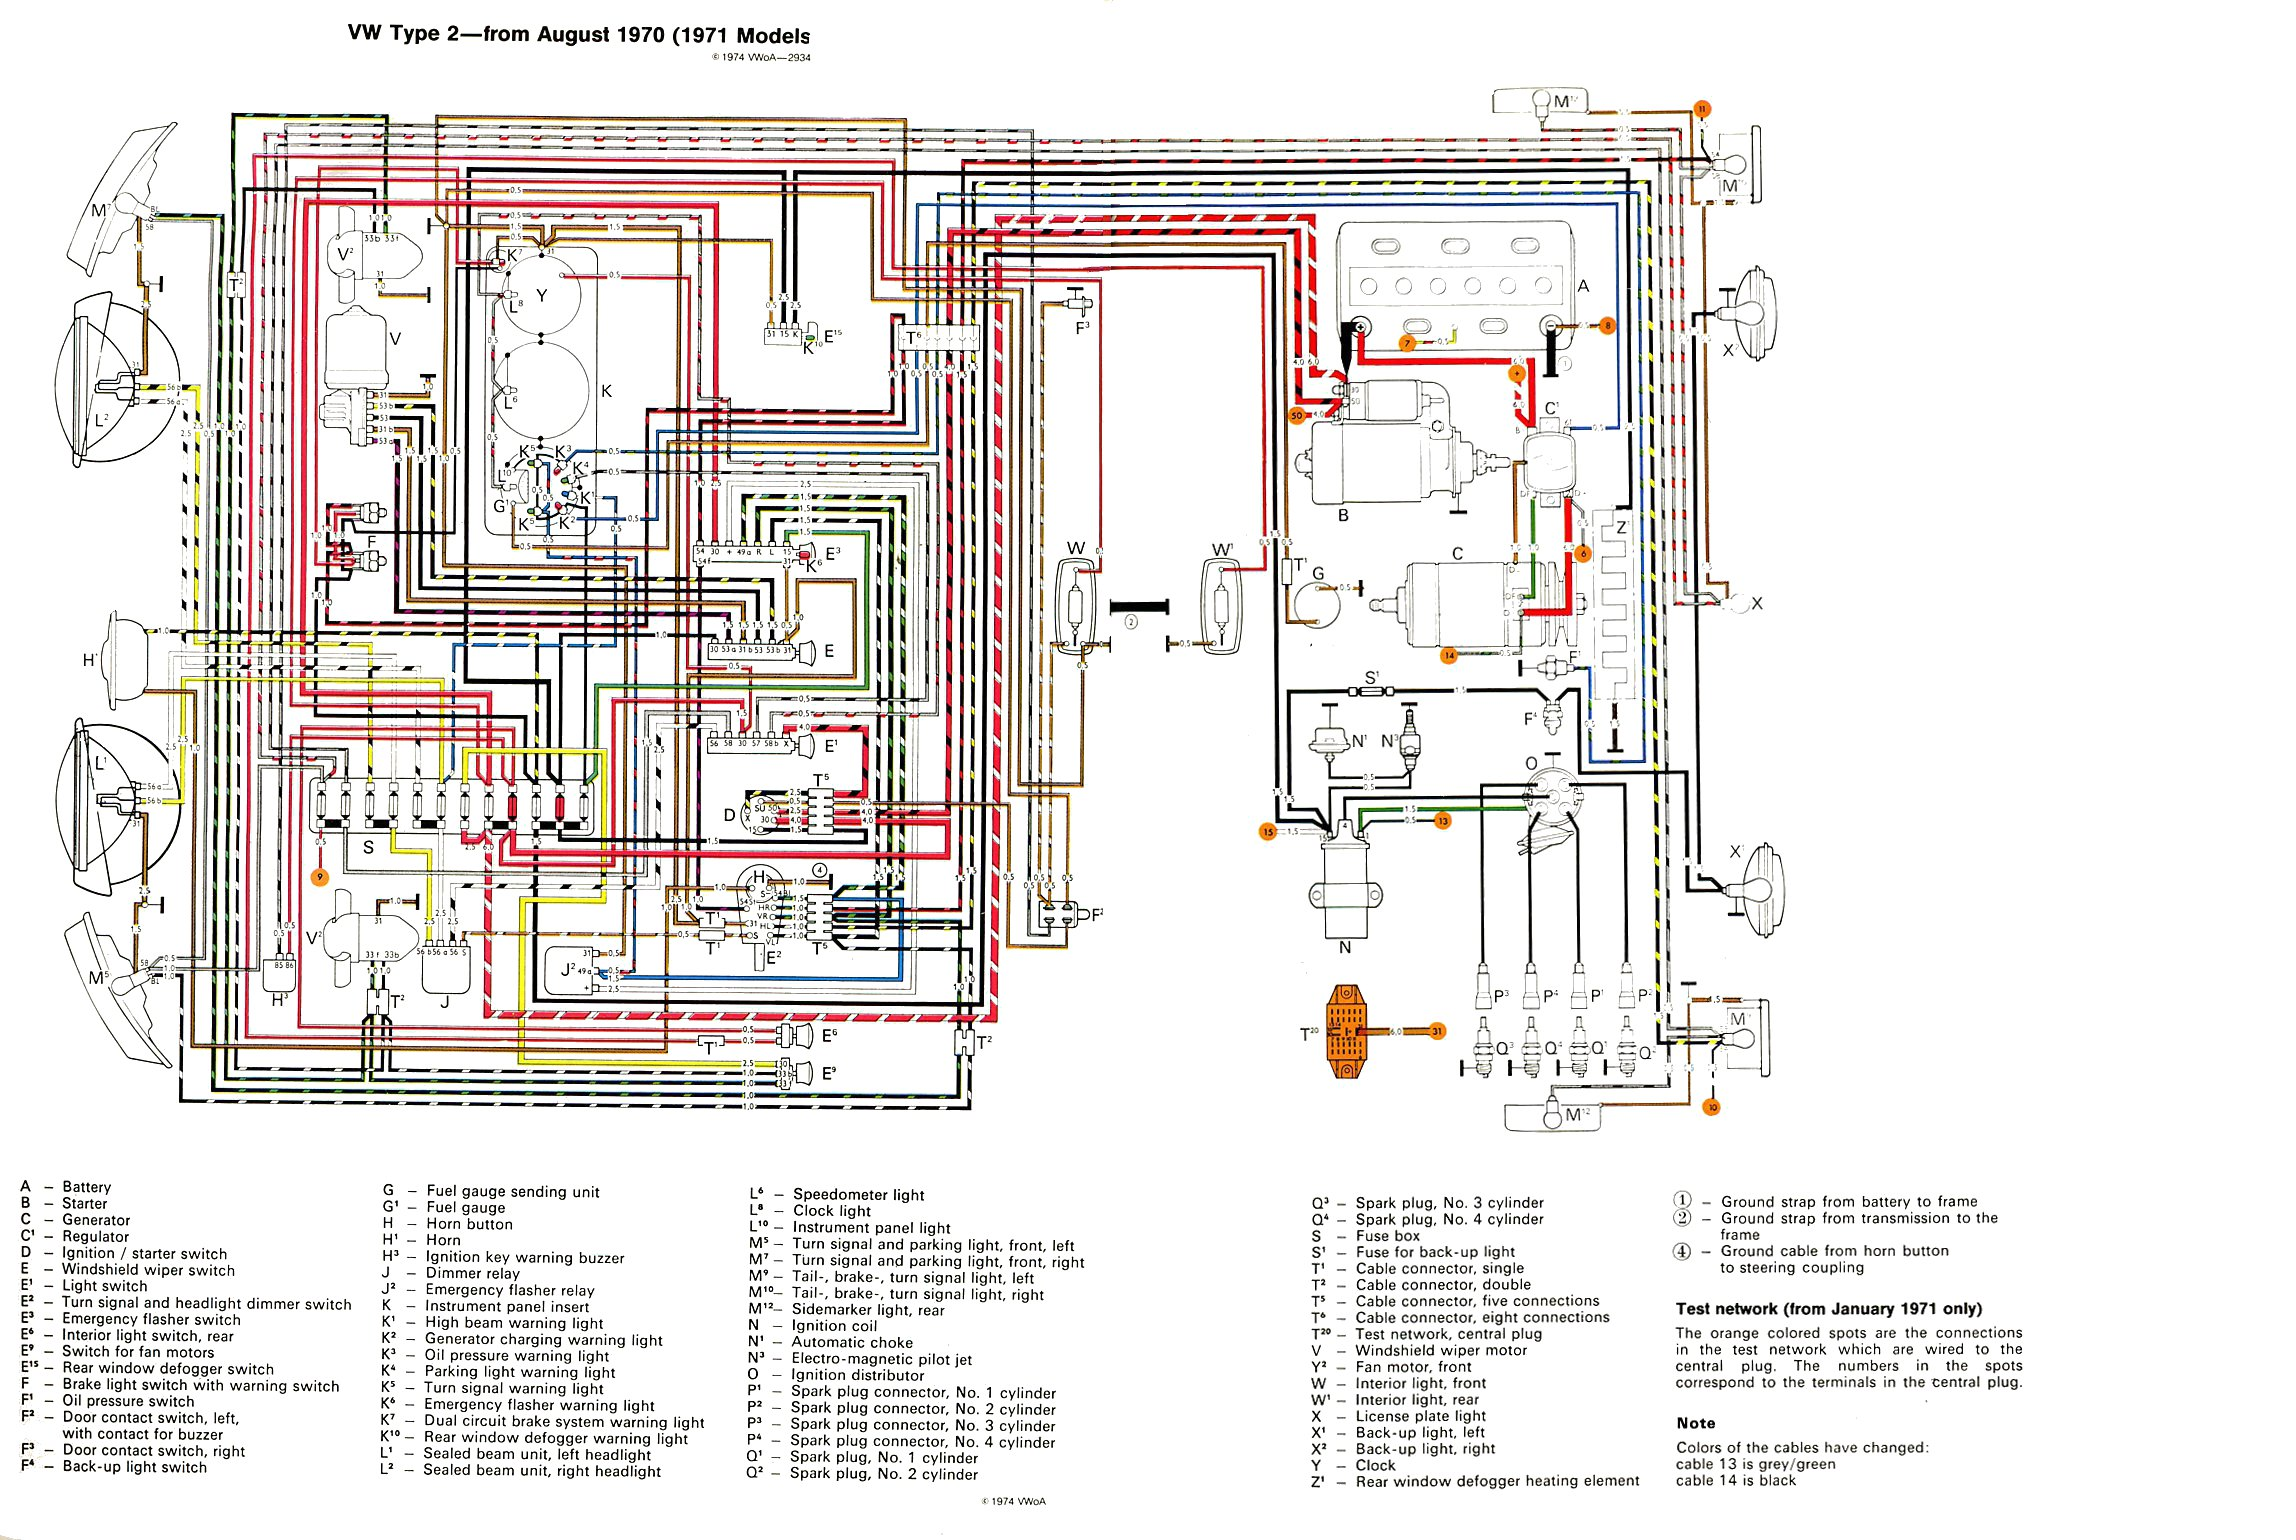 Thesamba type 2 wiring diagrams cheapraybanclubmaster Gallery